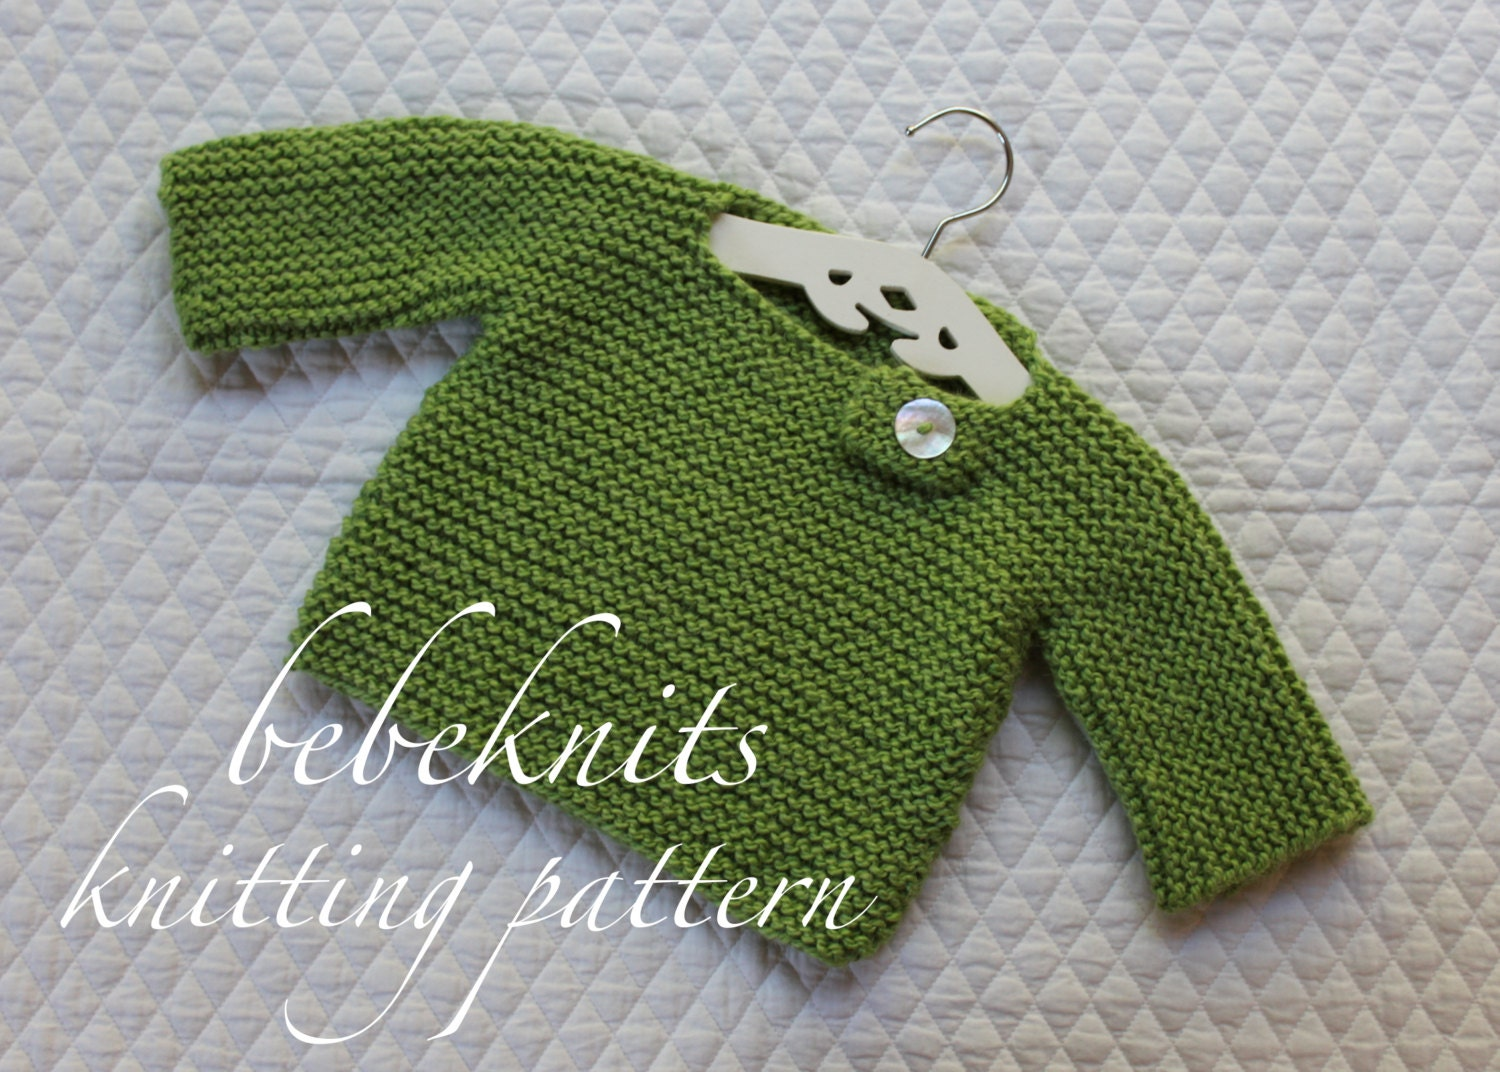 Bebeknits Simple French Style Buttoned Baby Pullover Knitting Pattern From Bebeknits On Etsy Studio